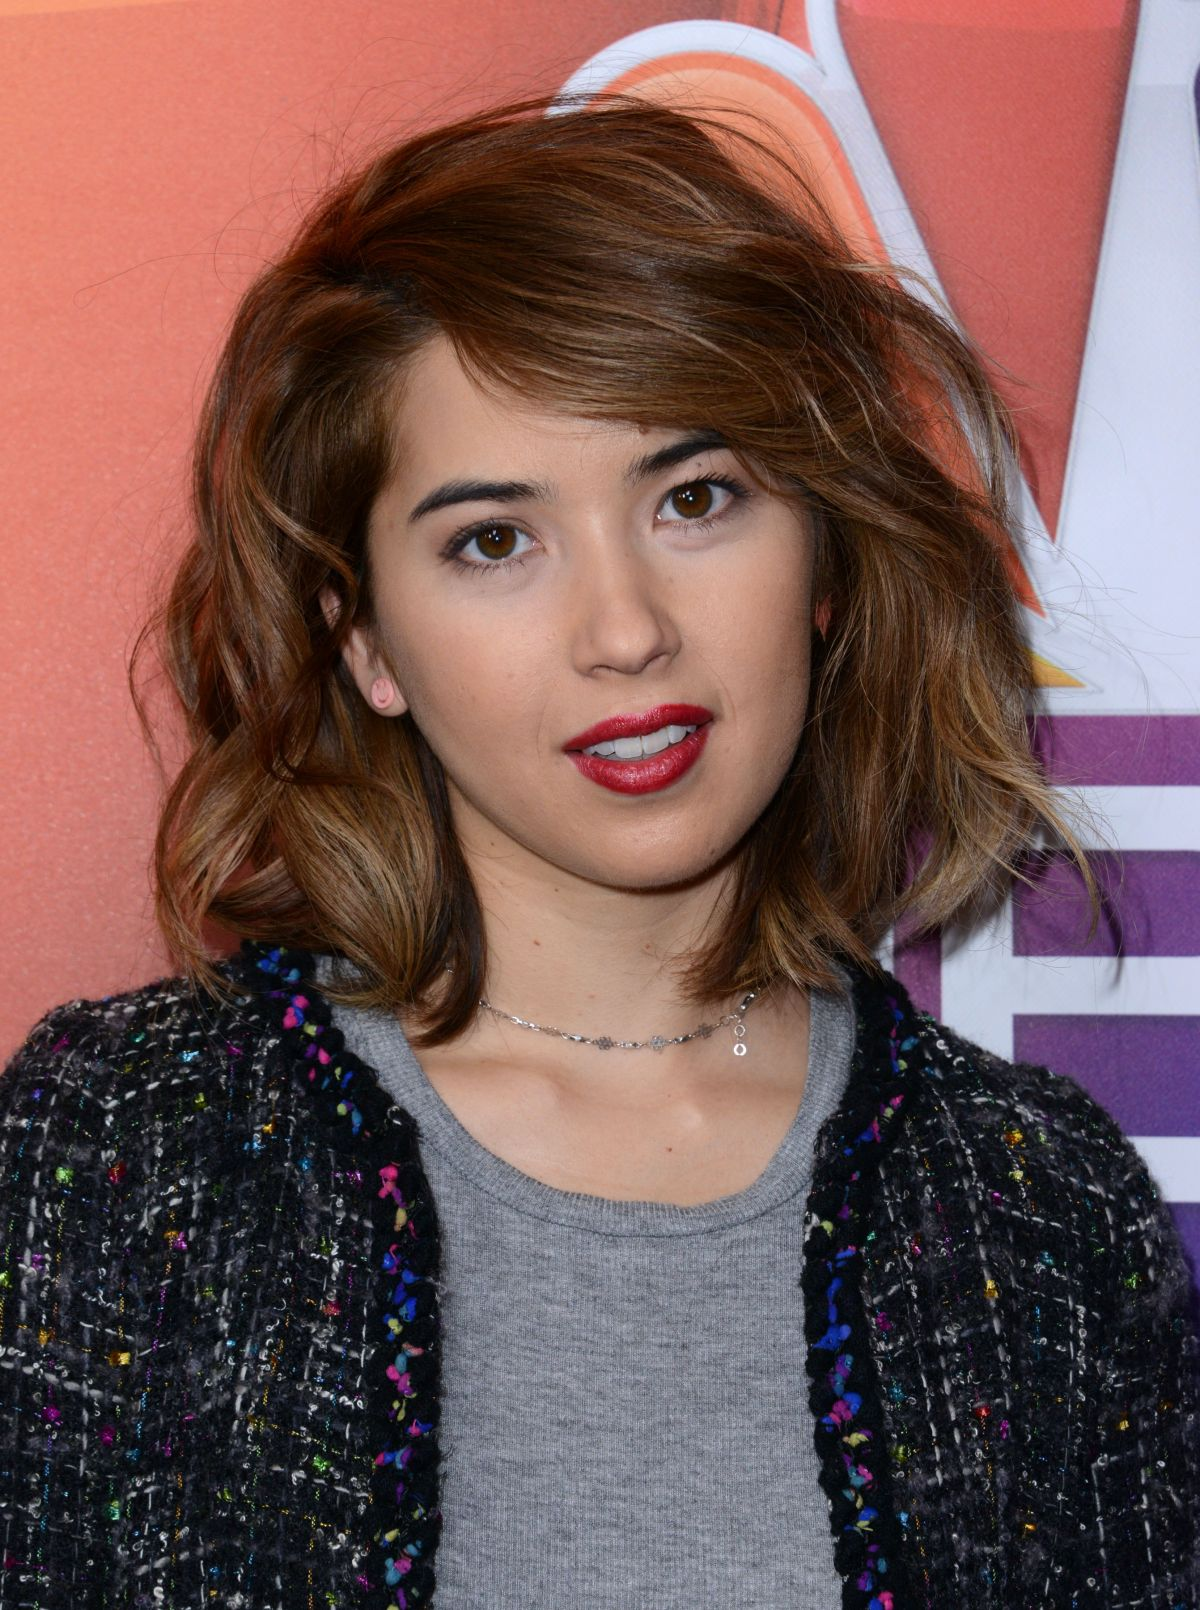 American actress and model Nichole Bloom naked photos leaked